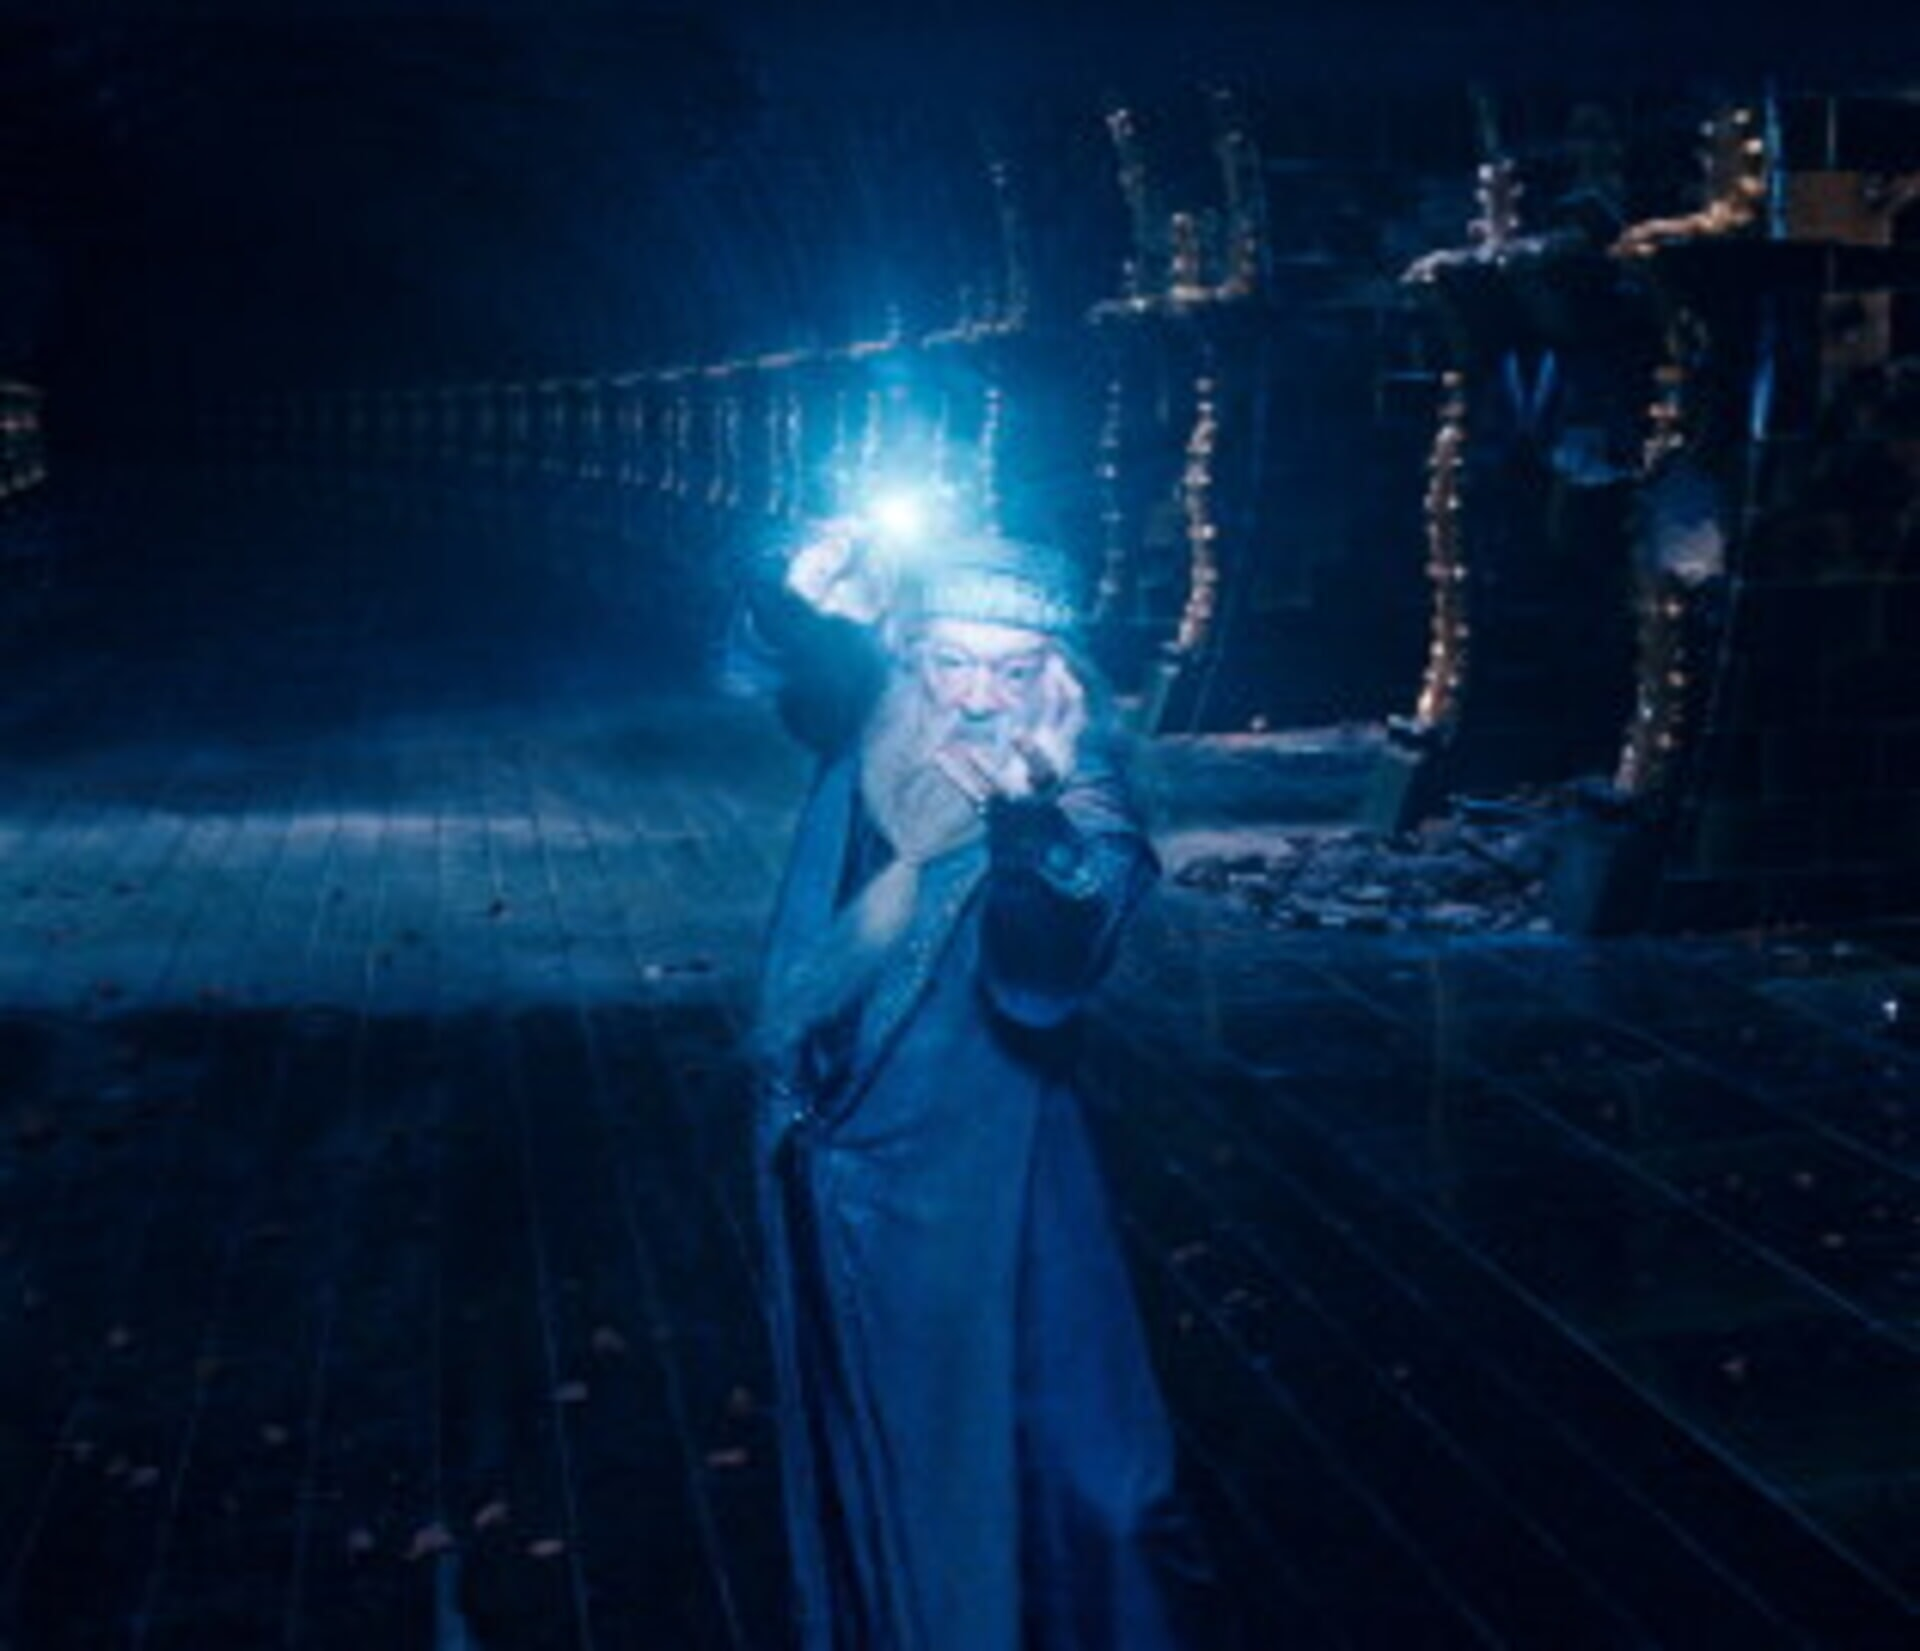 Harry Potter and the Order of the Phoenix - Image 47